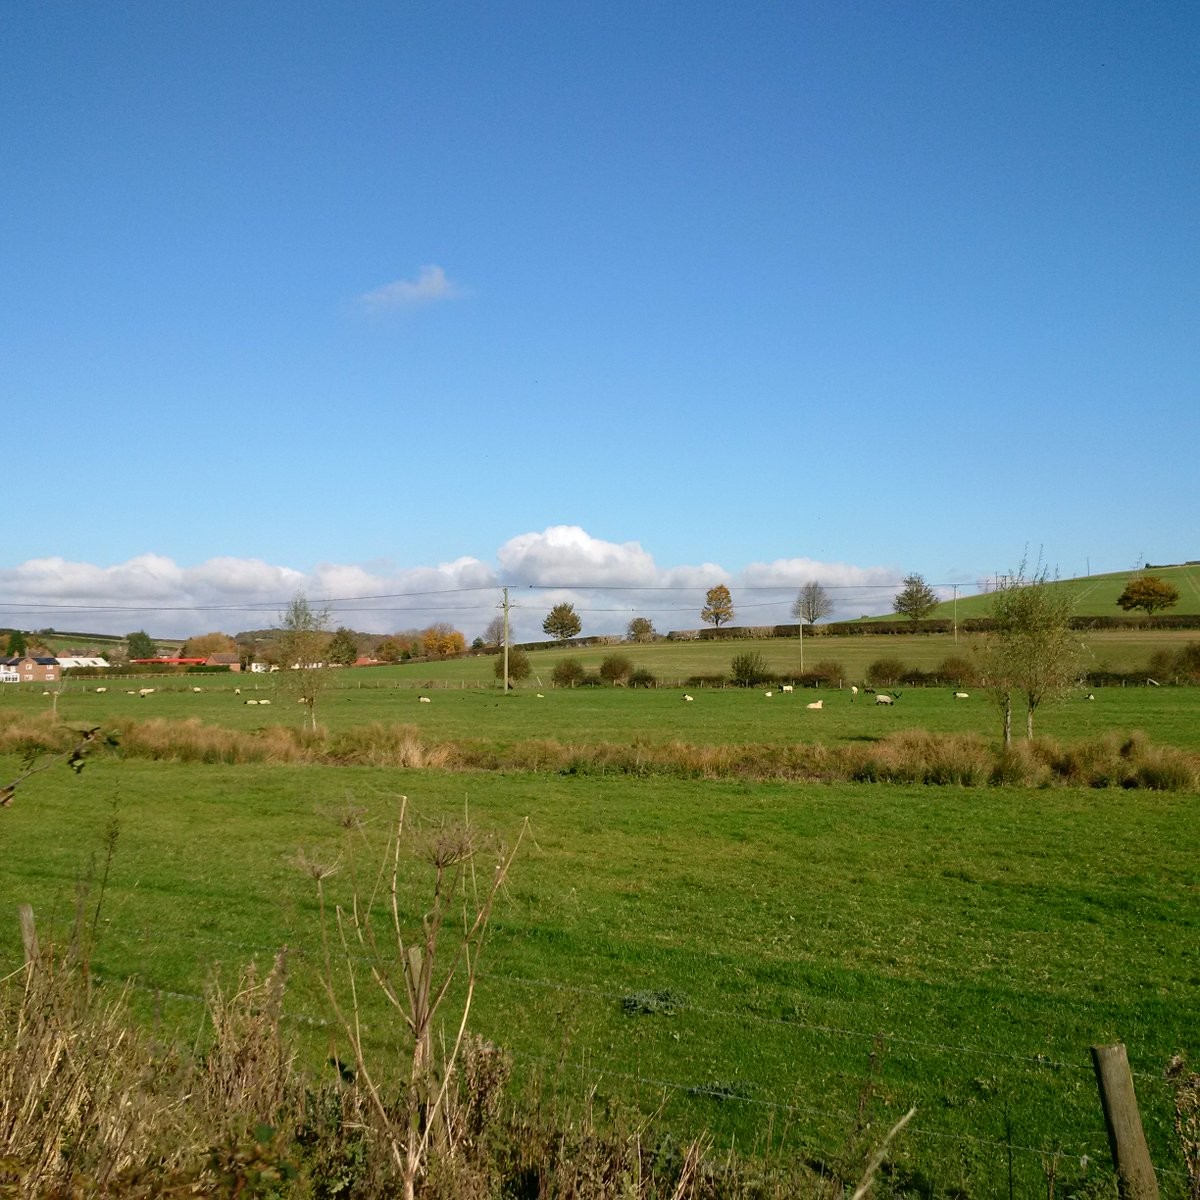 Connect West Berkshire Planning A Walk In WestBerkshire Catch Kennections Bus 4 To The Lambourn Valley Get Free App